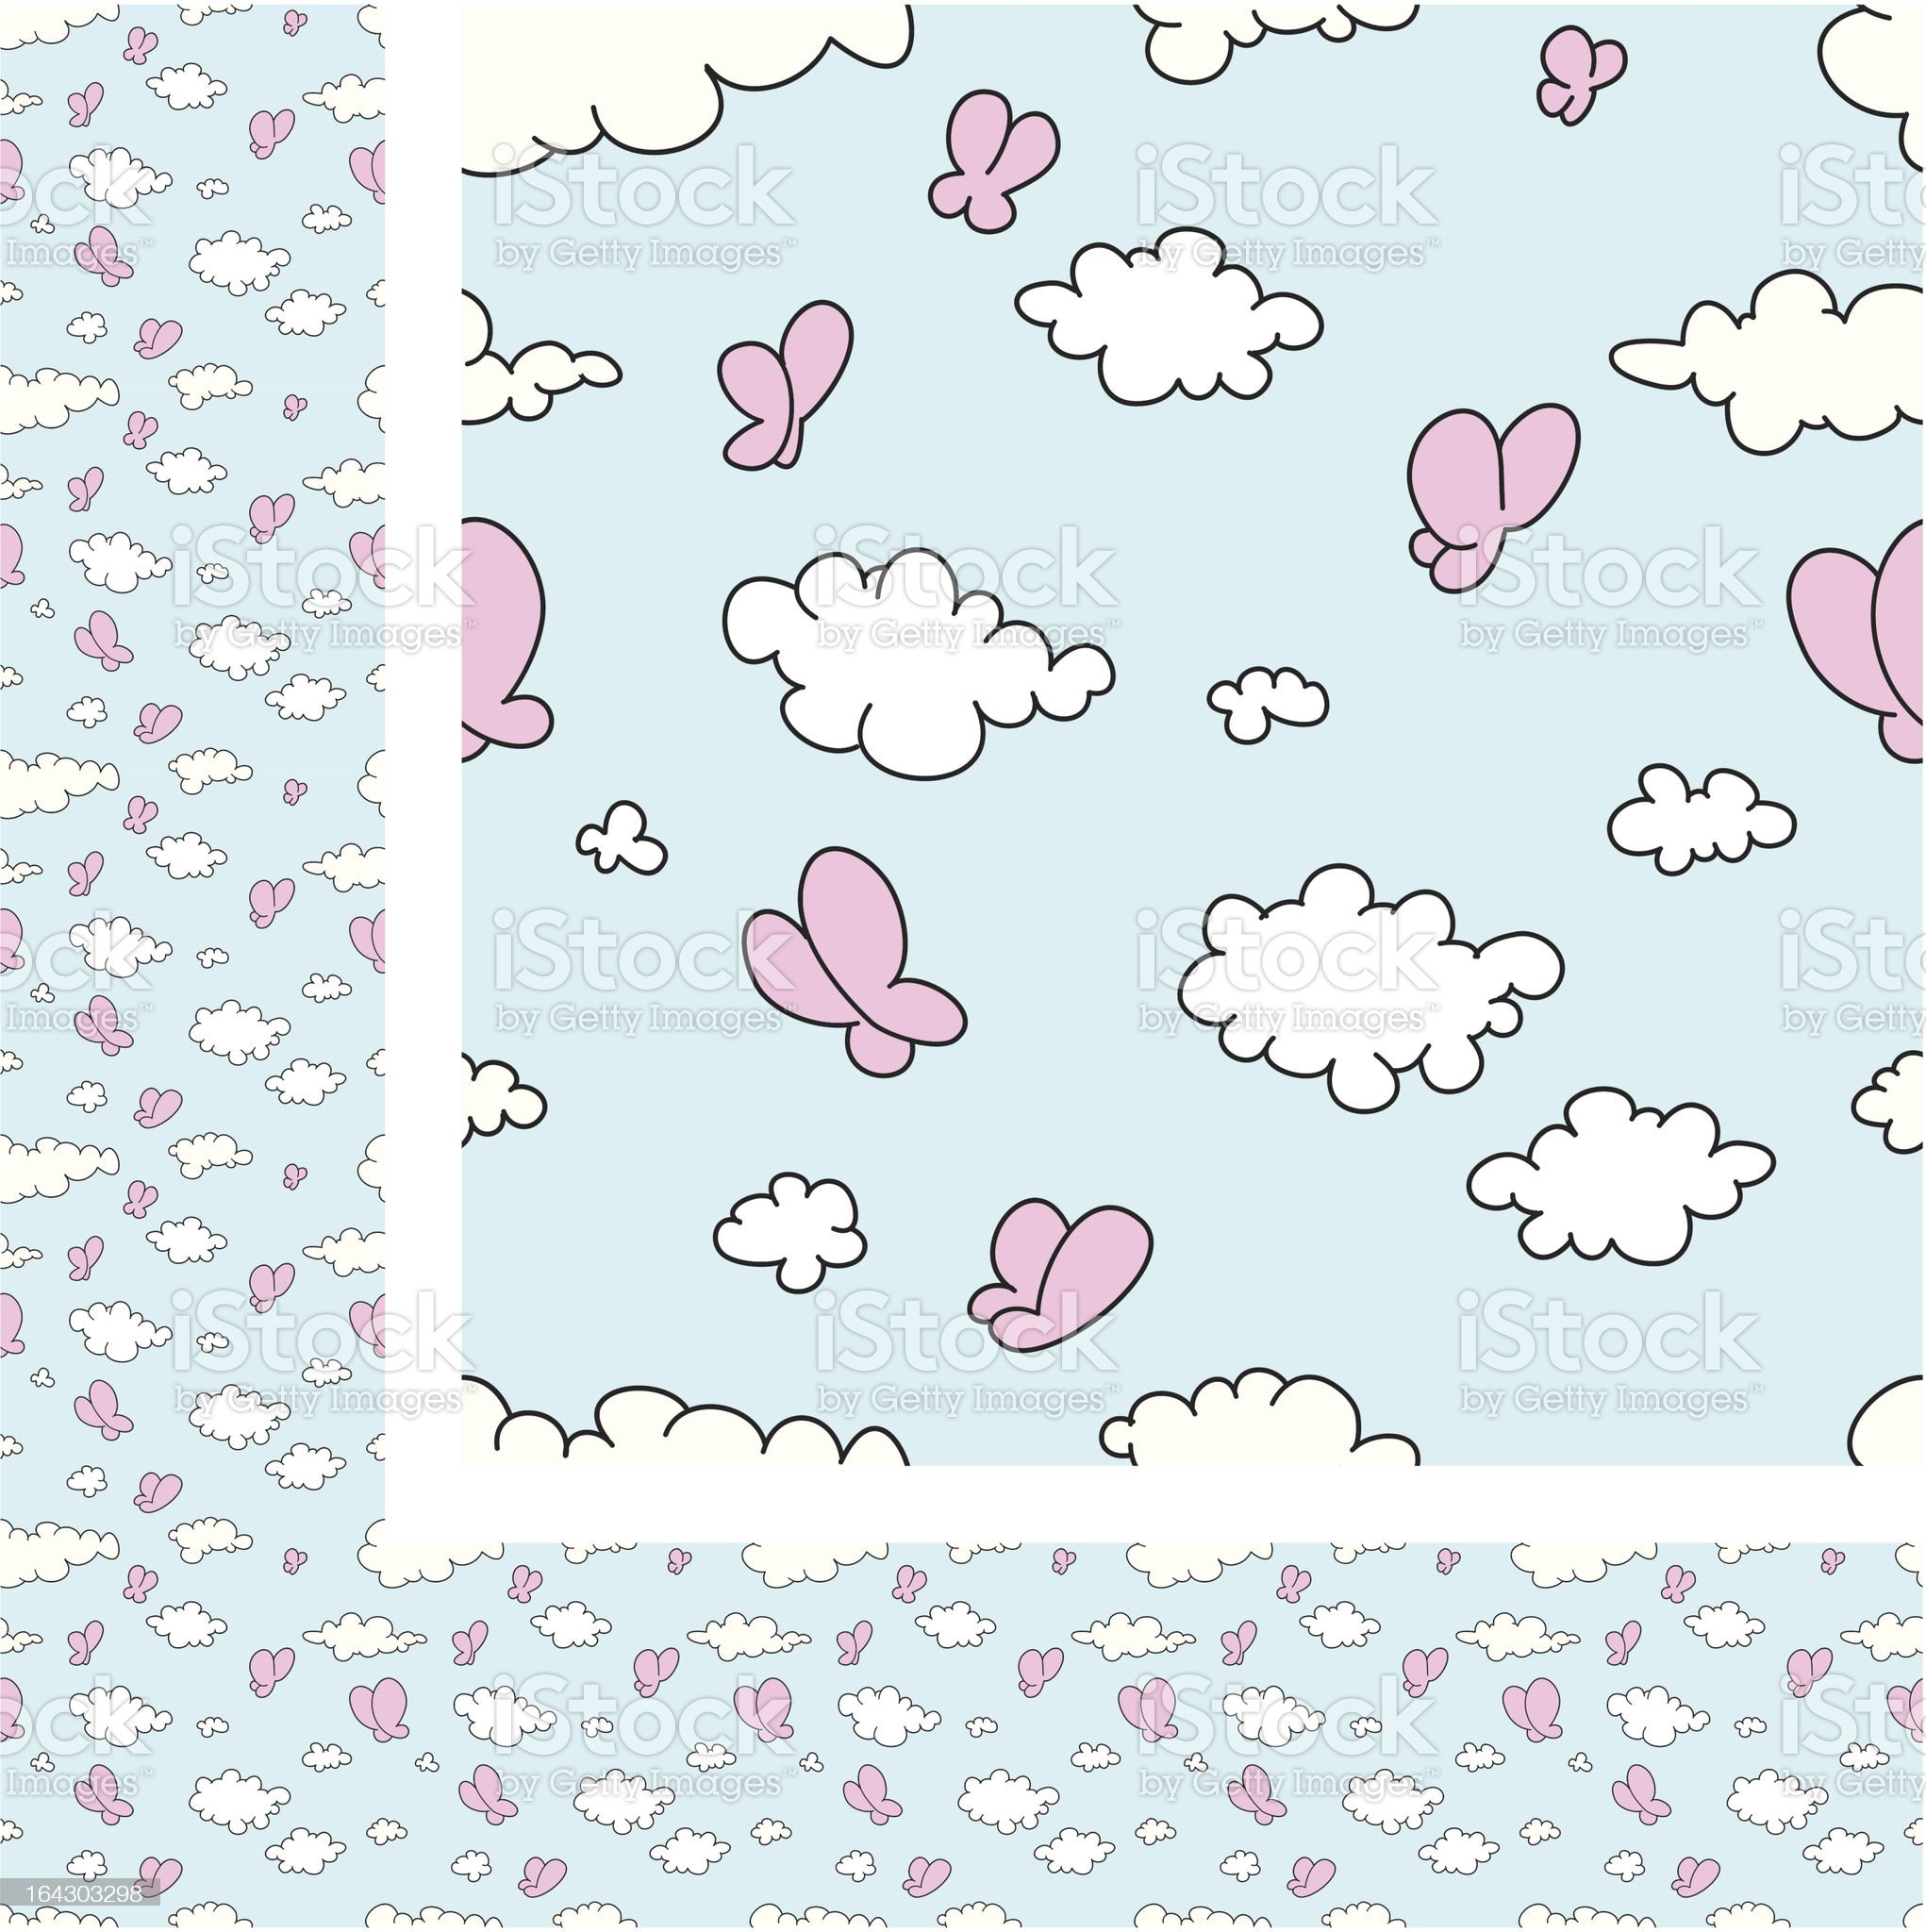 Seamless Wallpaper cloud pattern royalty-free stock vector art